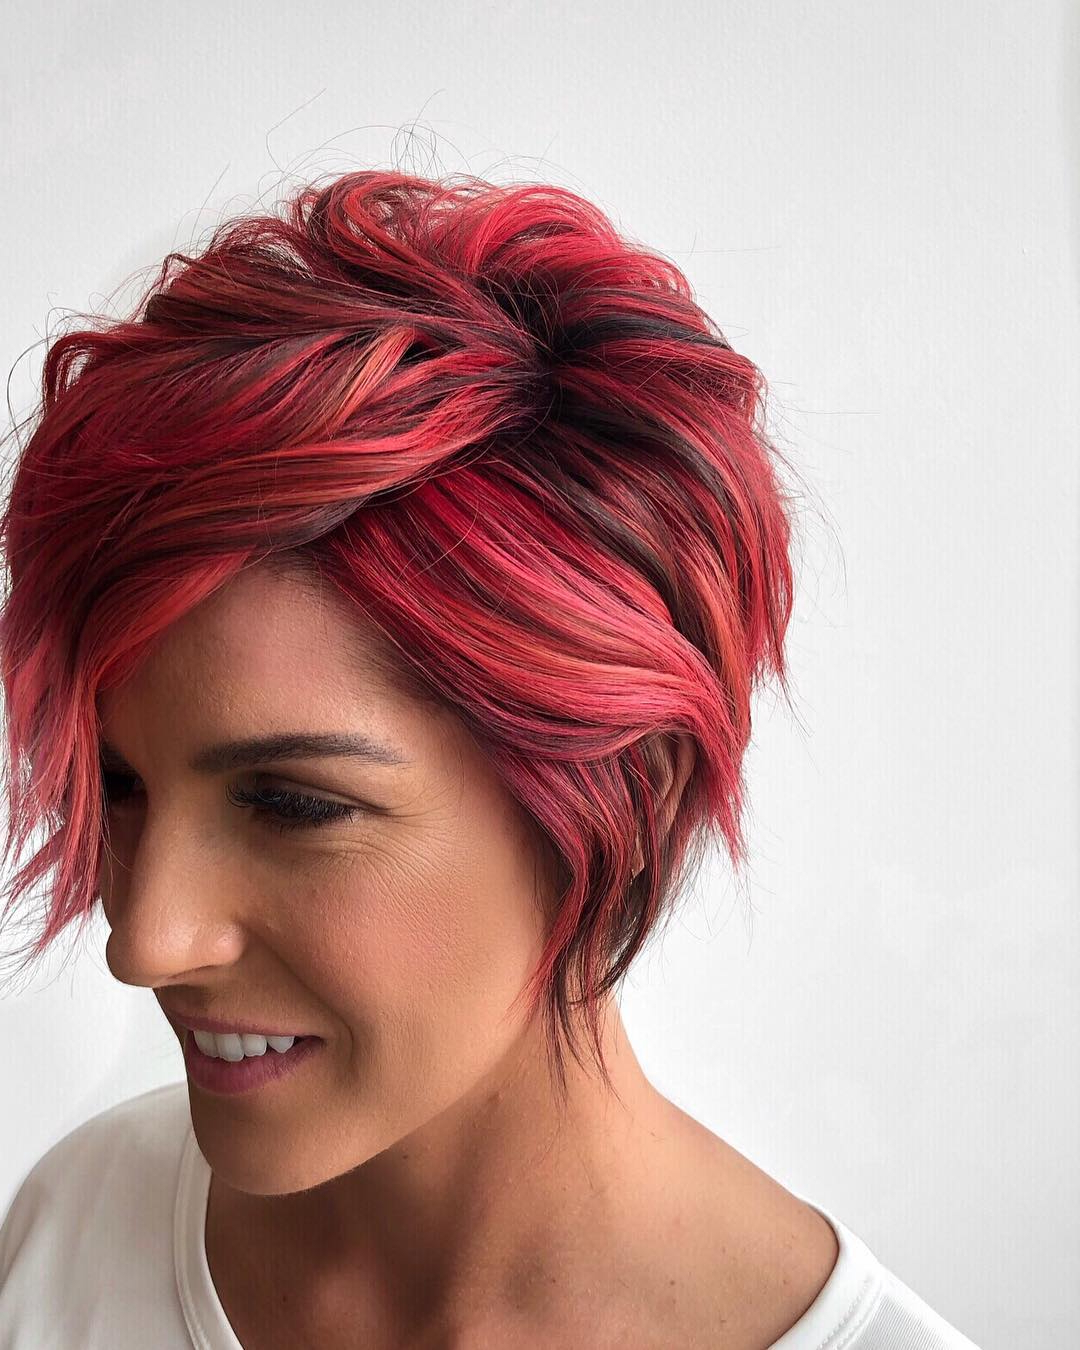 Top 10 Trendy, Low Maintenance Short Layered Hairstyles For 2018  2019 For Black Short Layered Hairstyles (View 18 of 25)